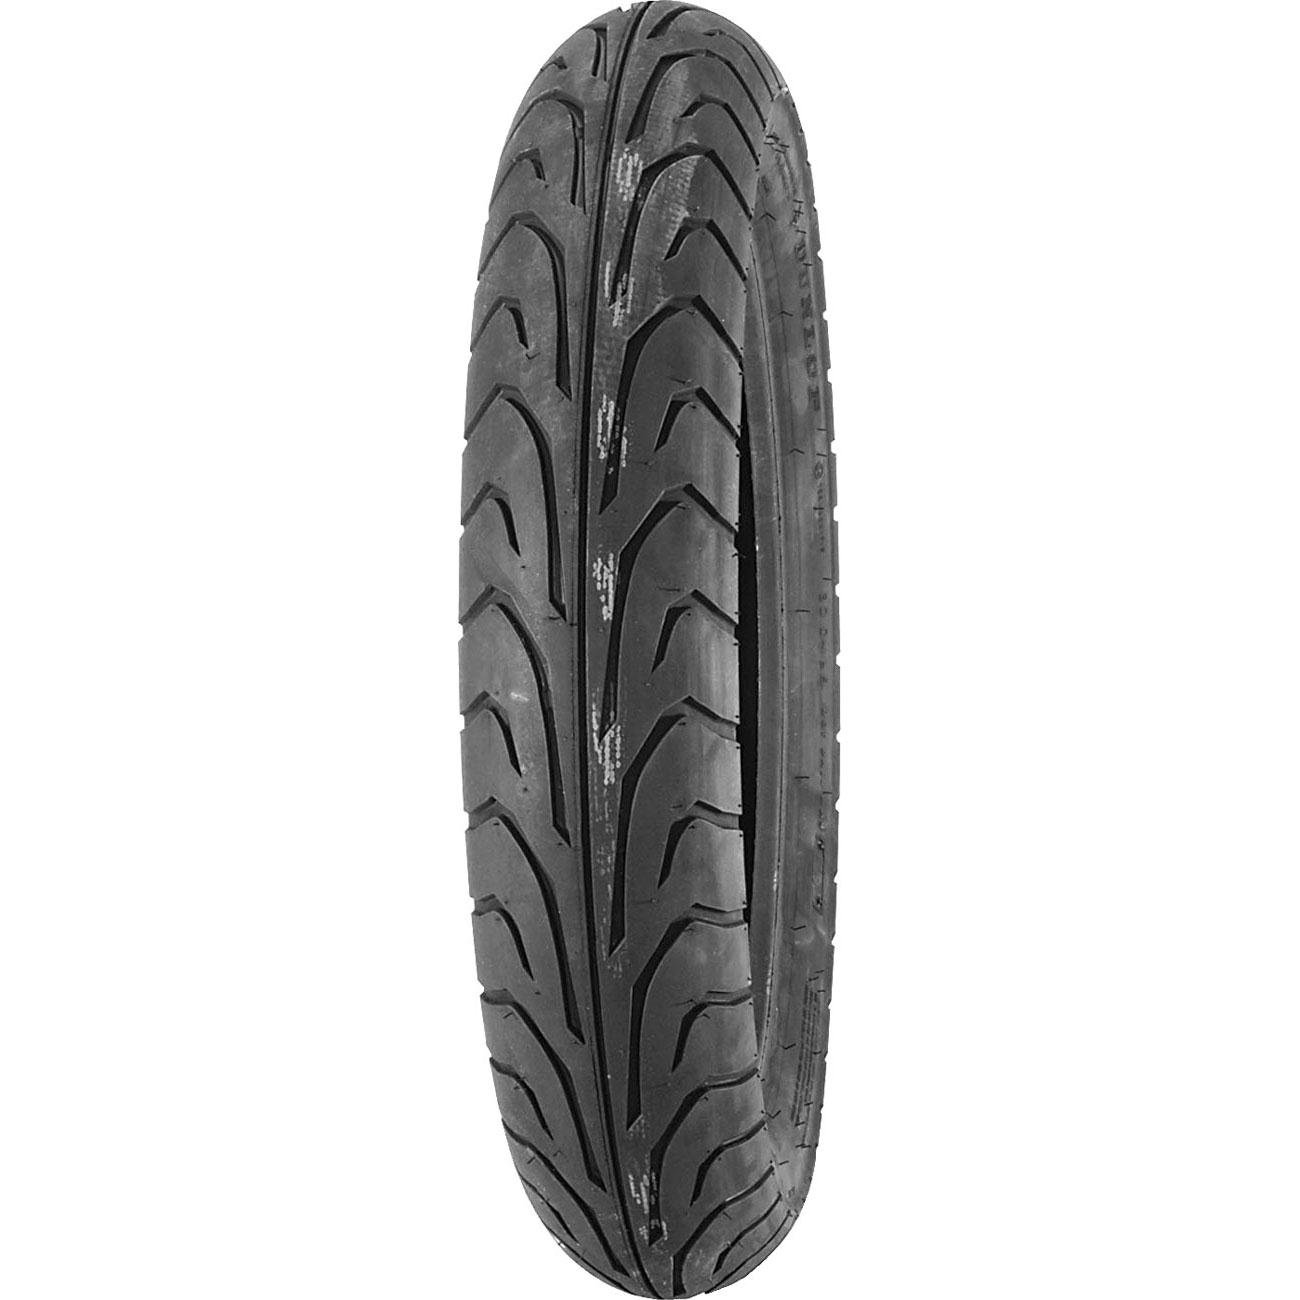 Dunlop GT501G Tire - Front - 110/70-17 , Position: Front, Tire Size: 110/70-17, Rim Size: 17, Speed Rating: V, Tire Type: Street, Tire Construction: Bias, Tire Application: Sport 300467